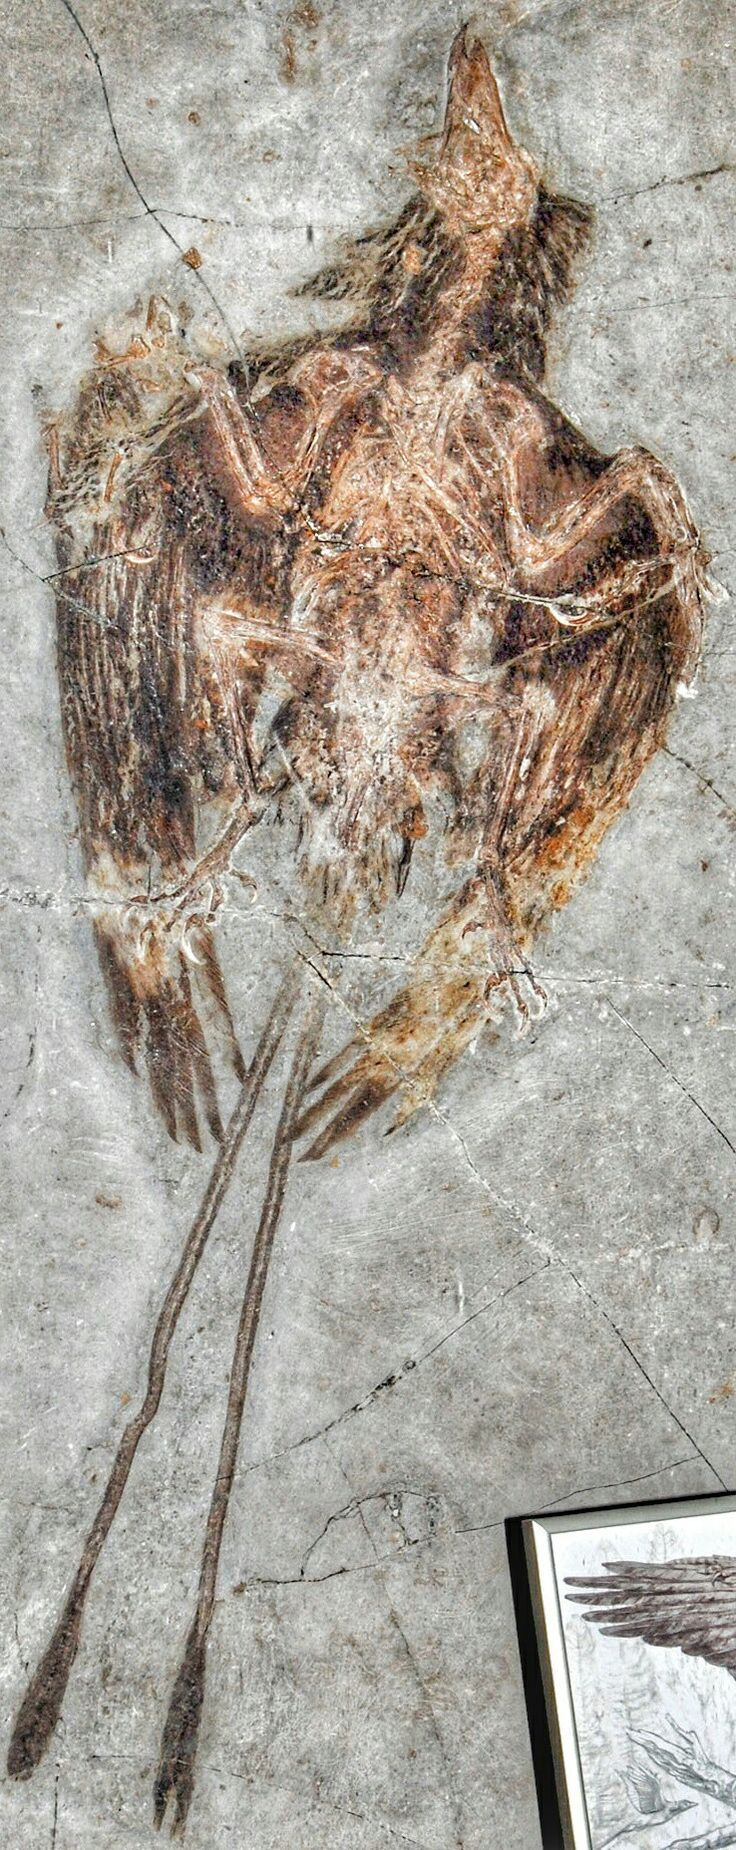 Confuciusornis is a genus of primitive crow-sized birds from the Early Cretaceous Yixian and Jiufotang Formations of China, dating from 125 to 120 million years ago. Like modern birds, Confuciusornis had a toothless beak, but close relatives of modern birds such as Hesperornis and Ichthyornis were toothed, indicating that the loss of teeth occurred convergently in Confuciusornis and living birds. It is the oldest known bird to have a beak